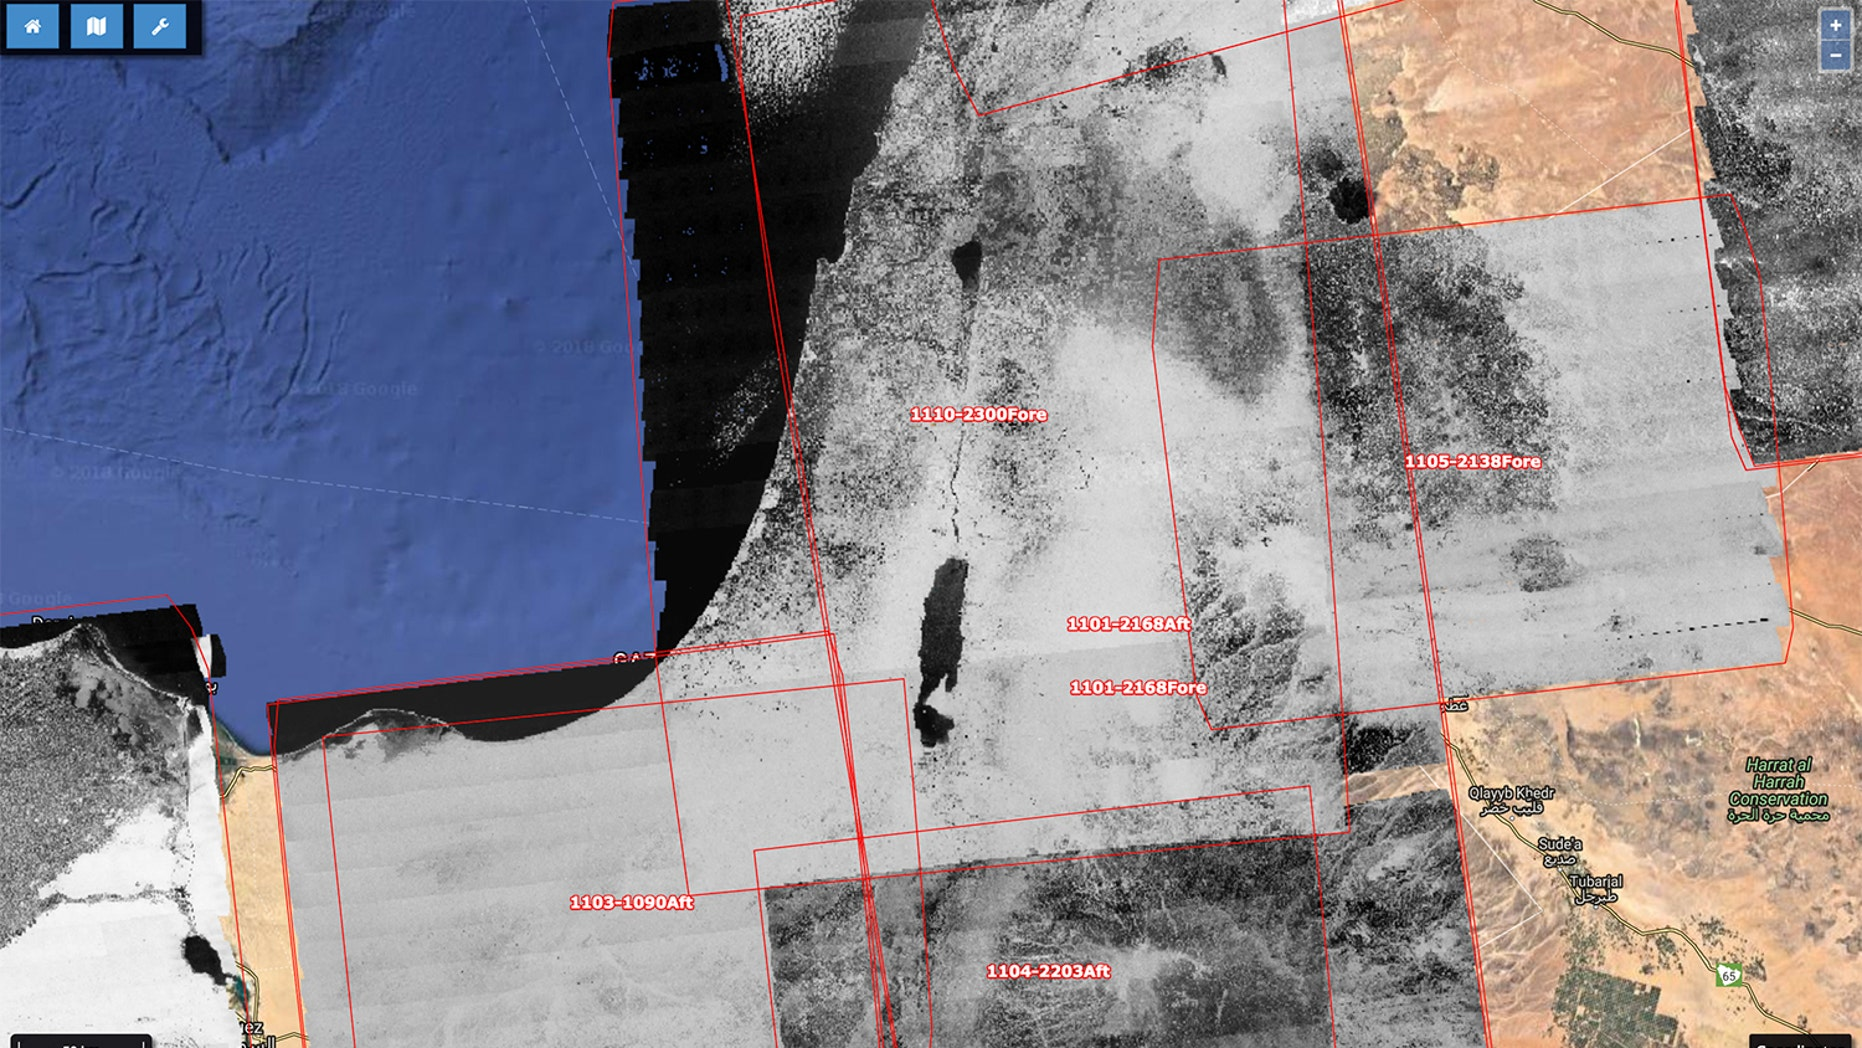 By mapping historical spy-satellite images to recent aerial photos, researchers can find historical sites that vanished decades ago.